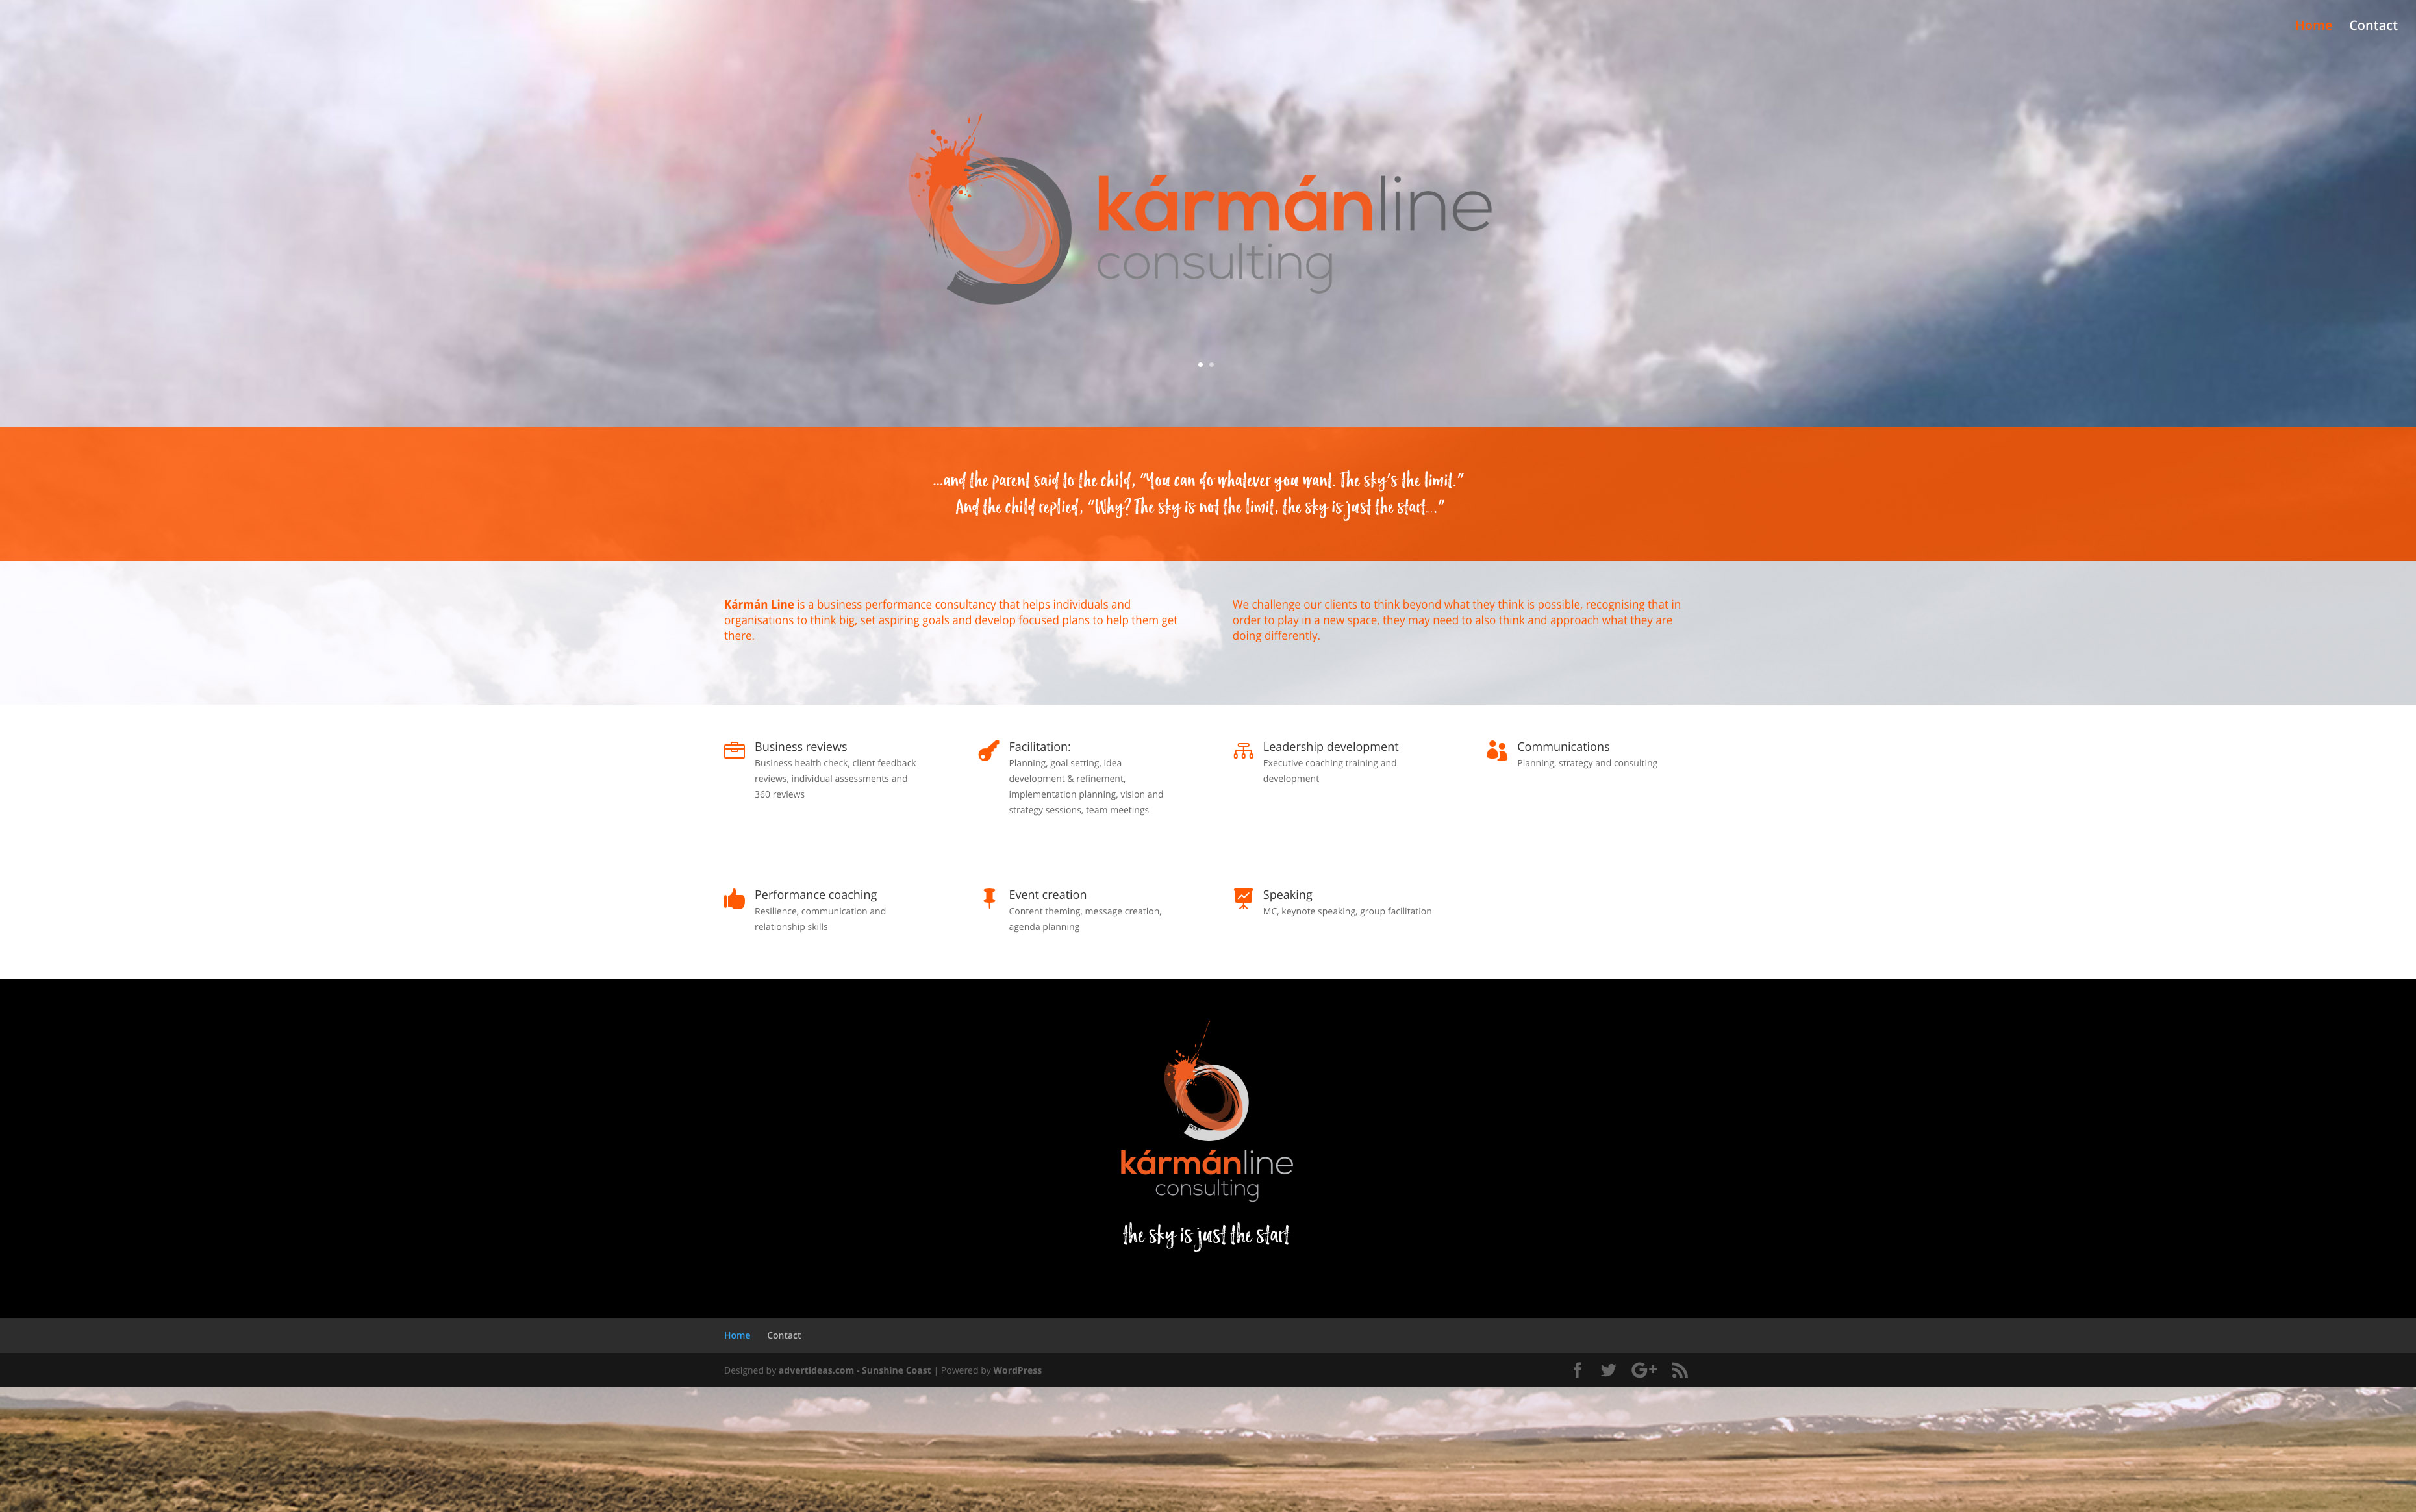 Karman line consulting